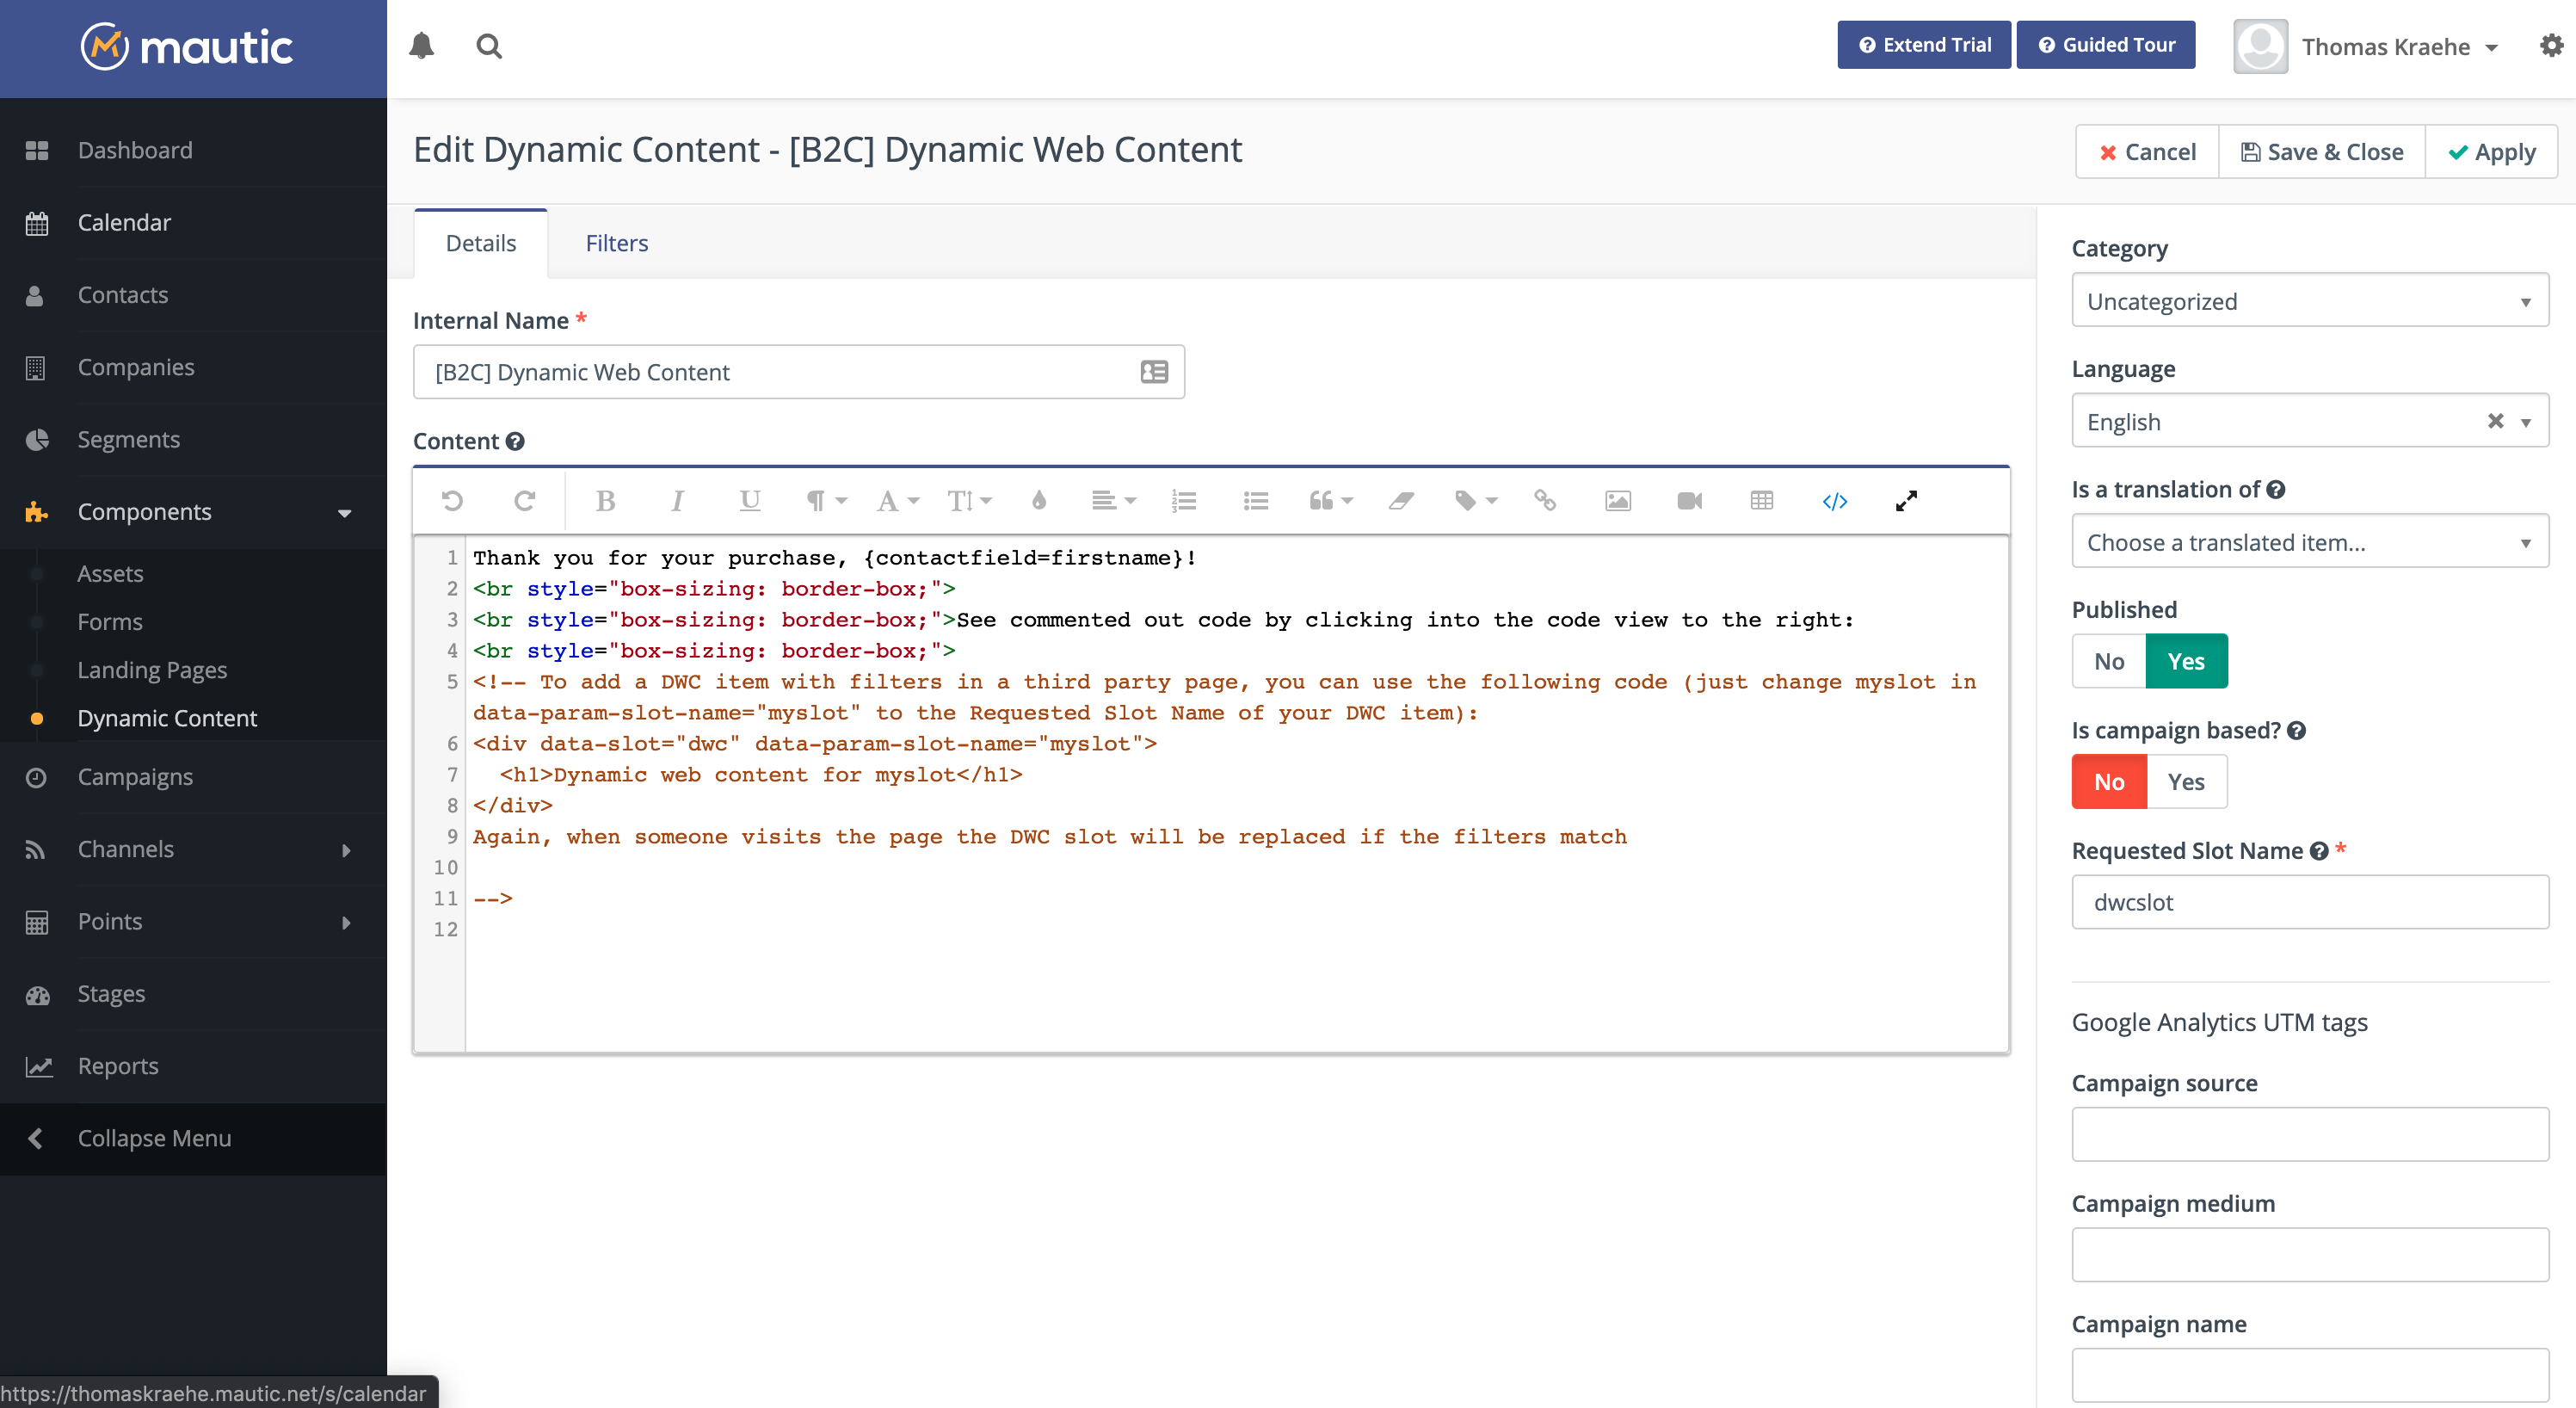 Dynamic Web Content in Mautic